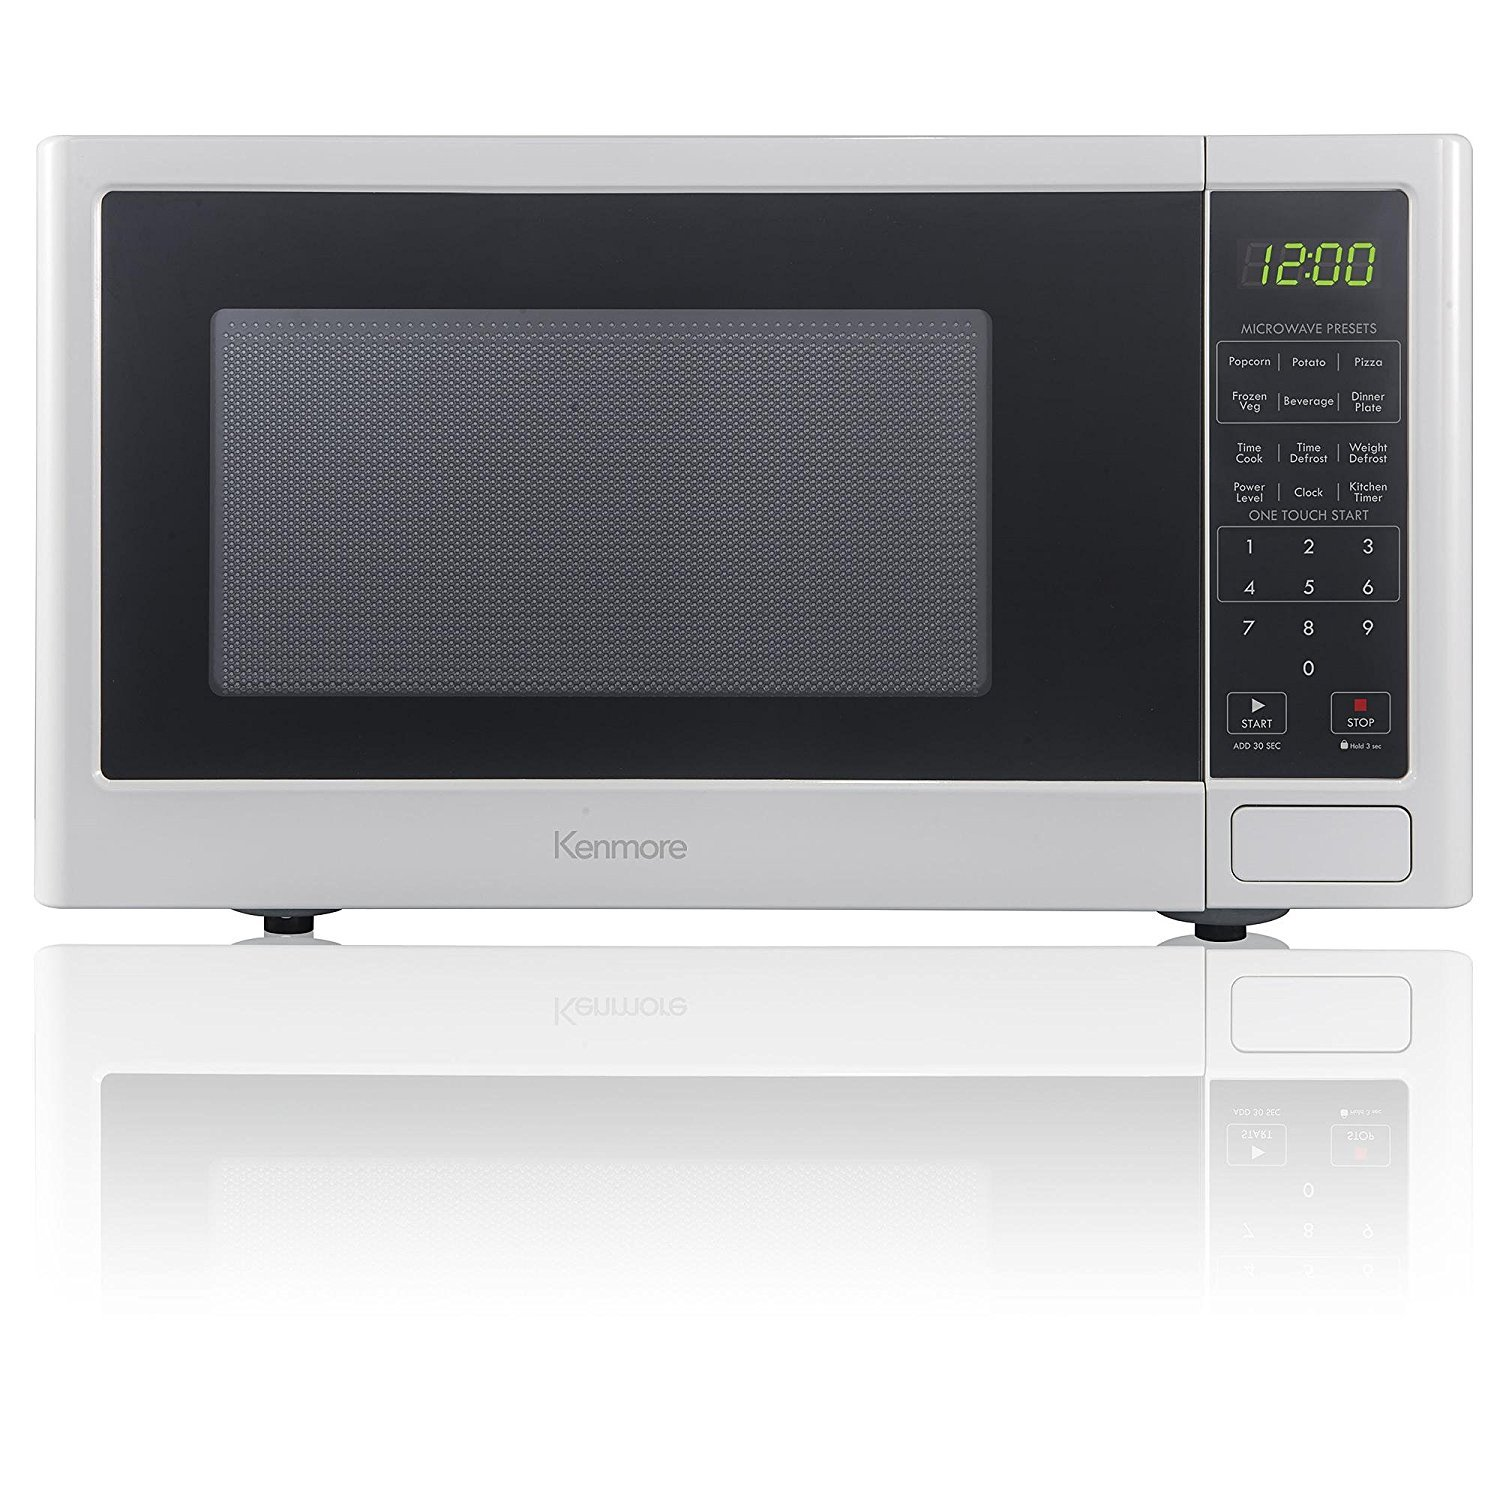 Amazon.com: Kenmore 0.9 cu. ft. Microwave Oven - White: Kitchen & Dining